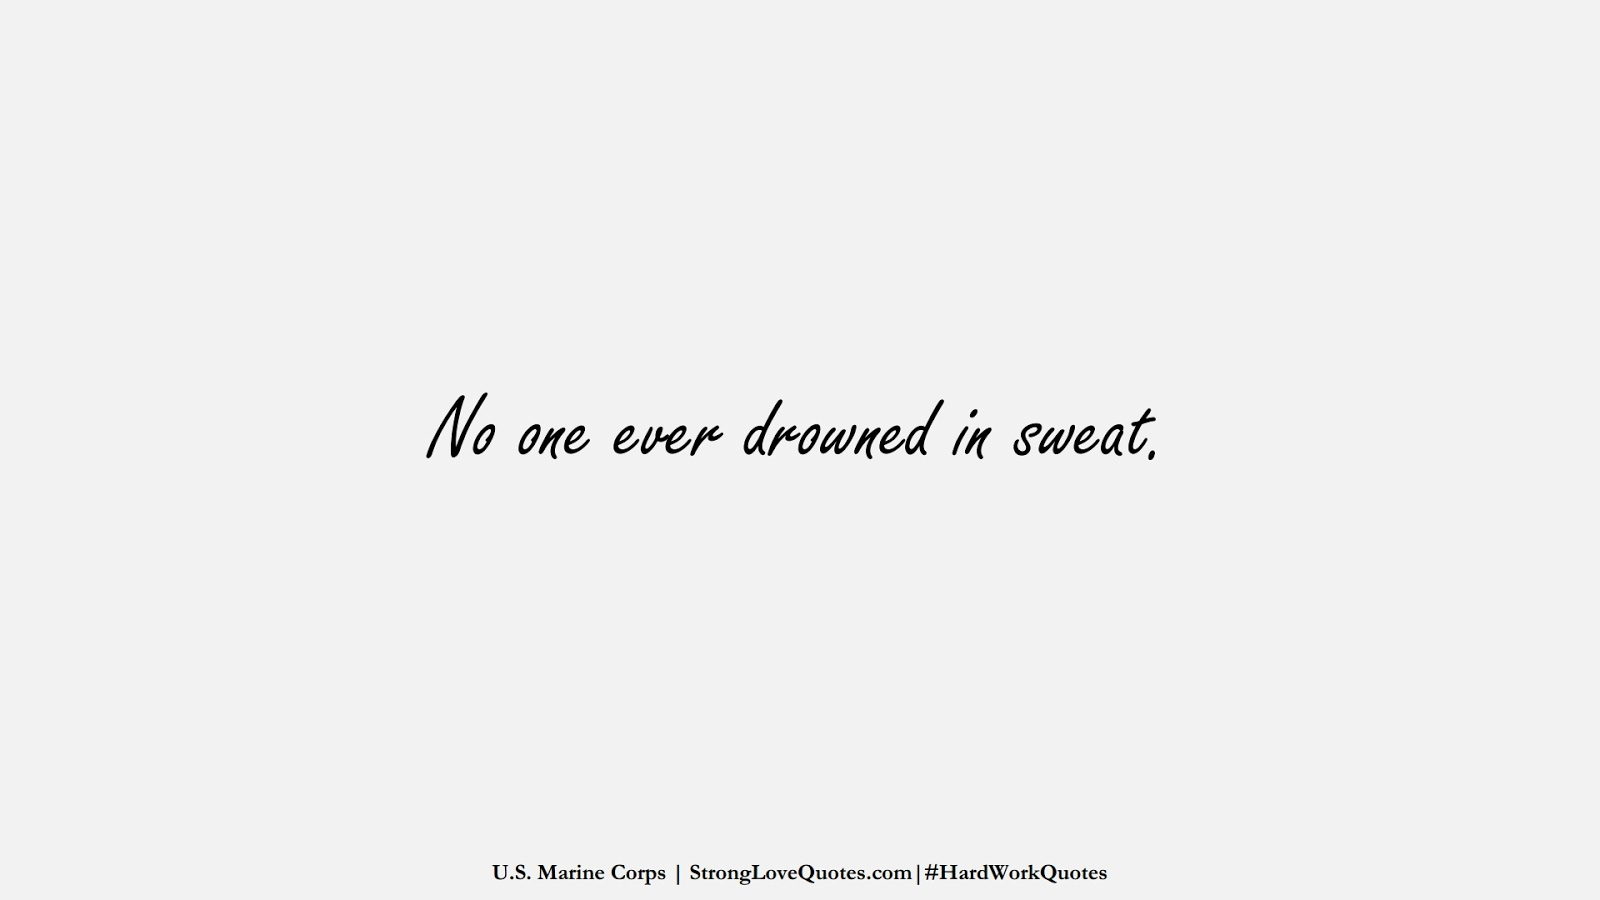 No one ever drowned in sweat. (U.S. Marine Corps);  #HardWorkQuotes